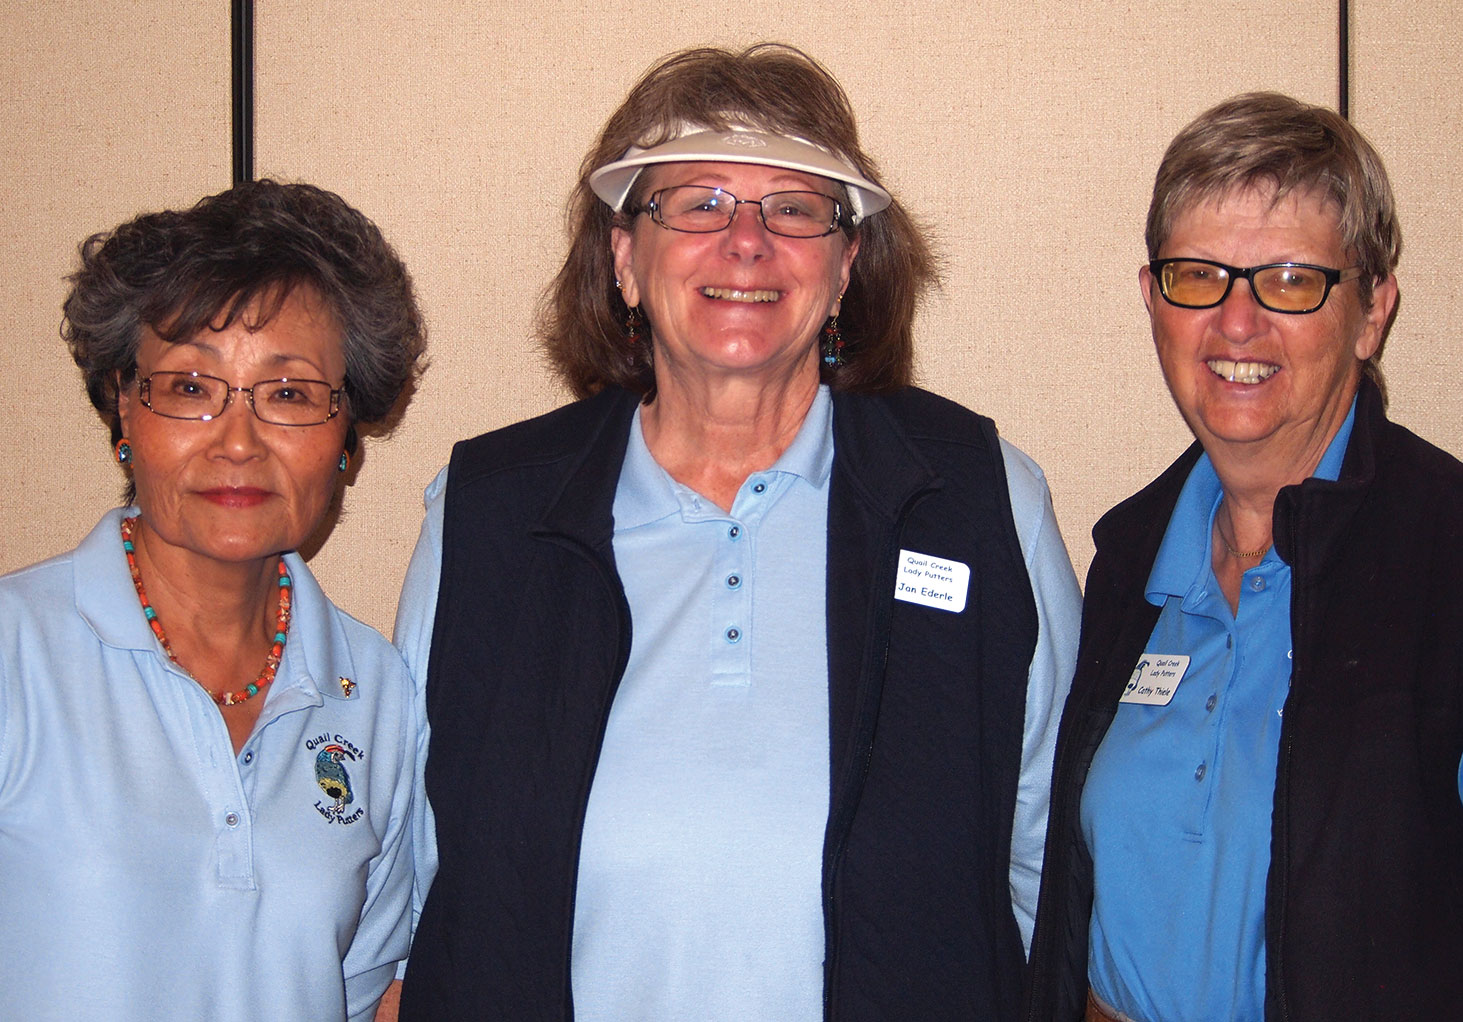 Left to right: Yoshie Hennessey celebrates 57 holes-in-one, Jan Ederle for maintaining the lowest net score, as Cathy Thiele congratulates them for their 2016 achievements; photo by Sylvia Butler.